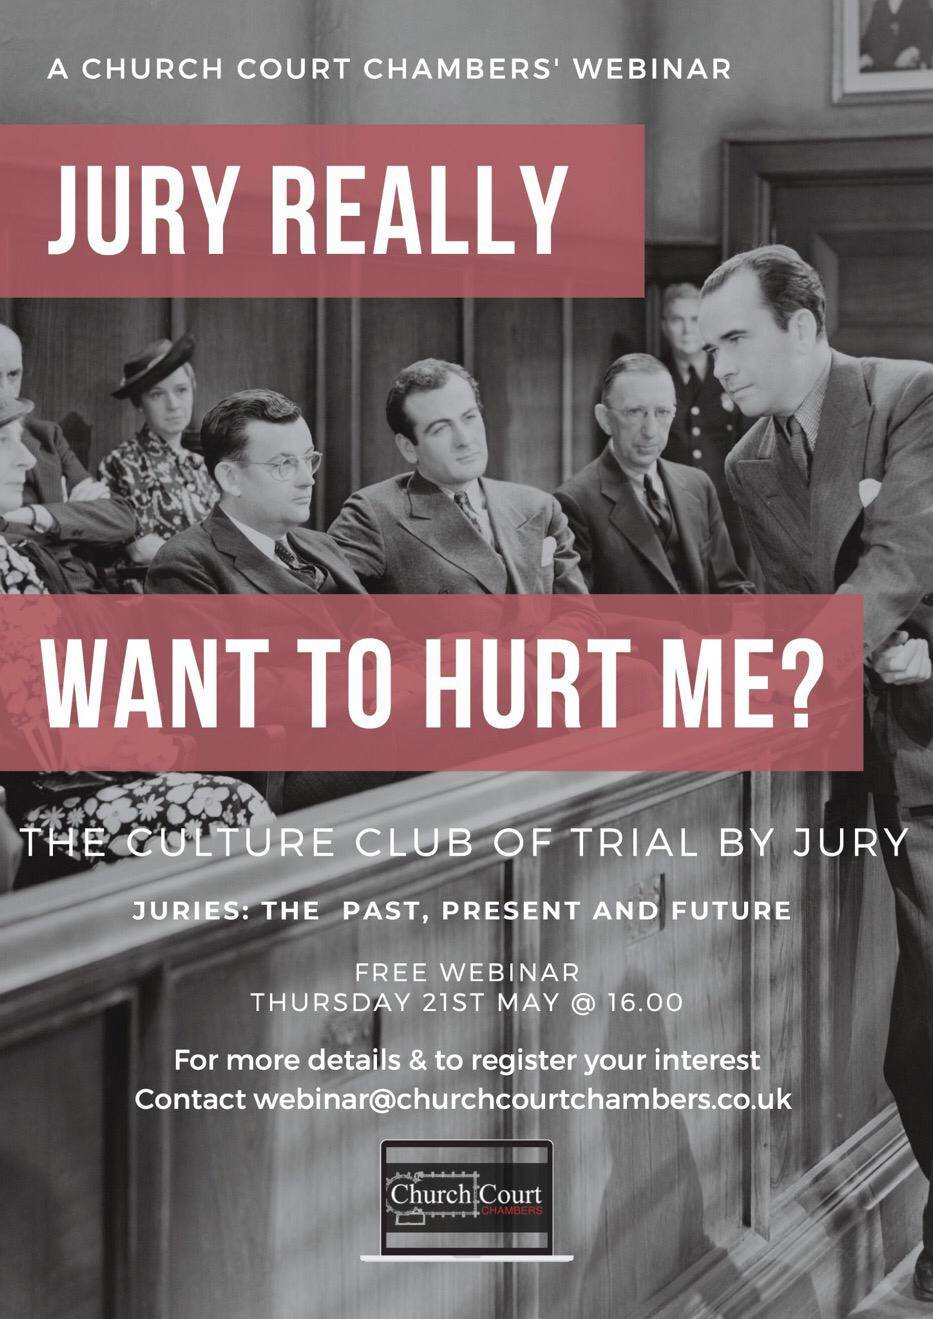 Jury Really Want To Hurt Me? The Culture Club Of Trial By Jury. A Church Court Webinar